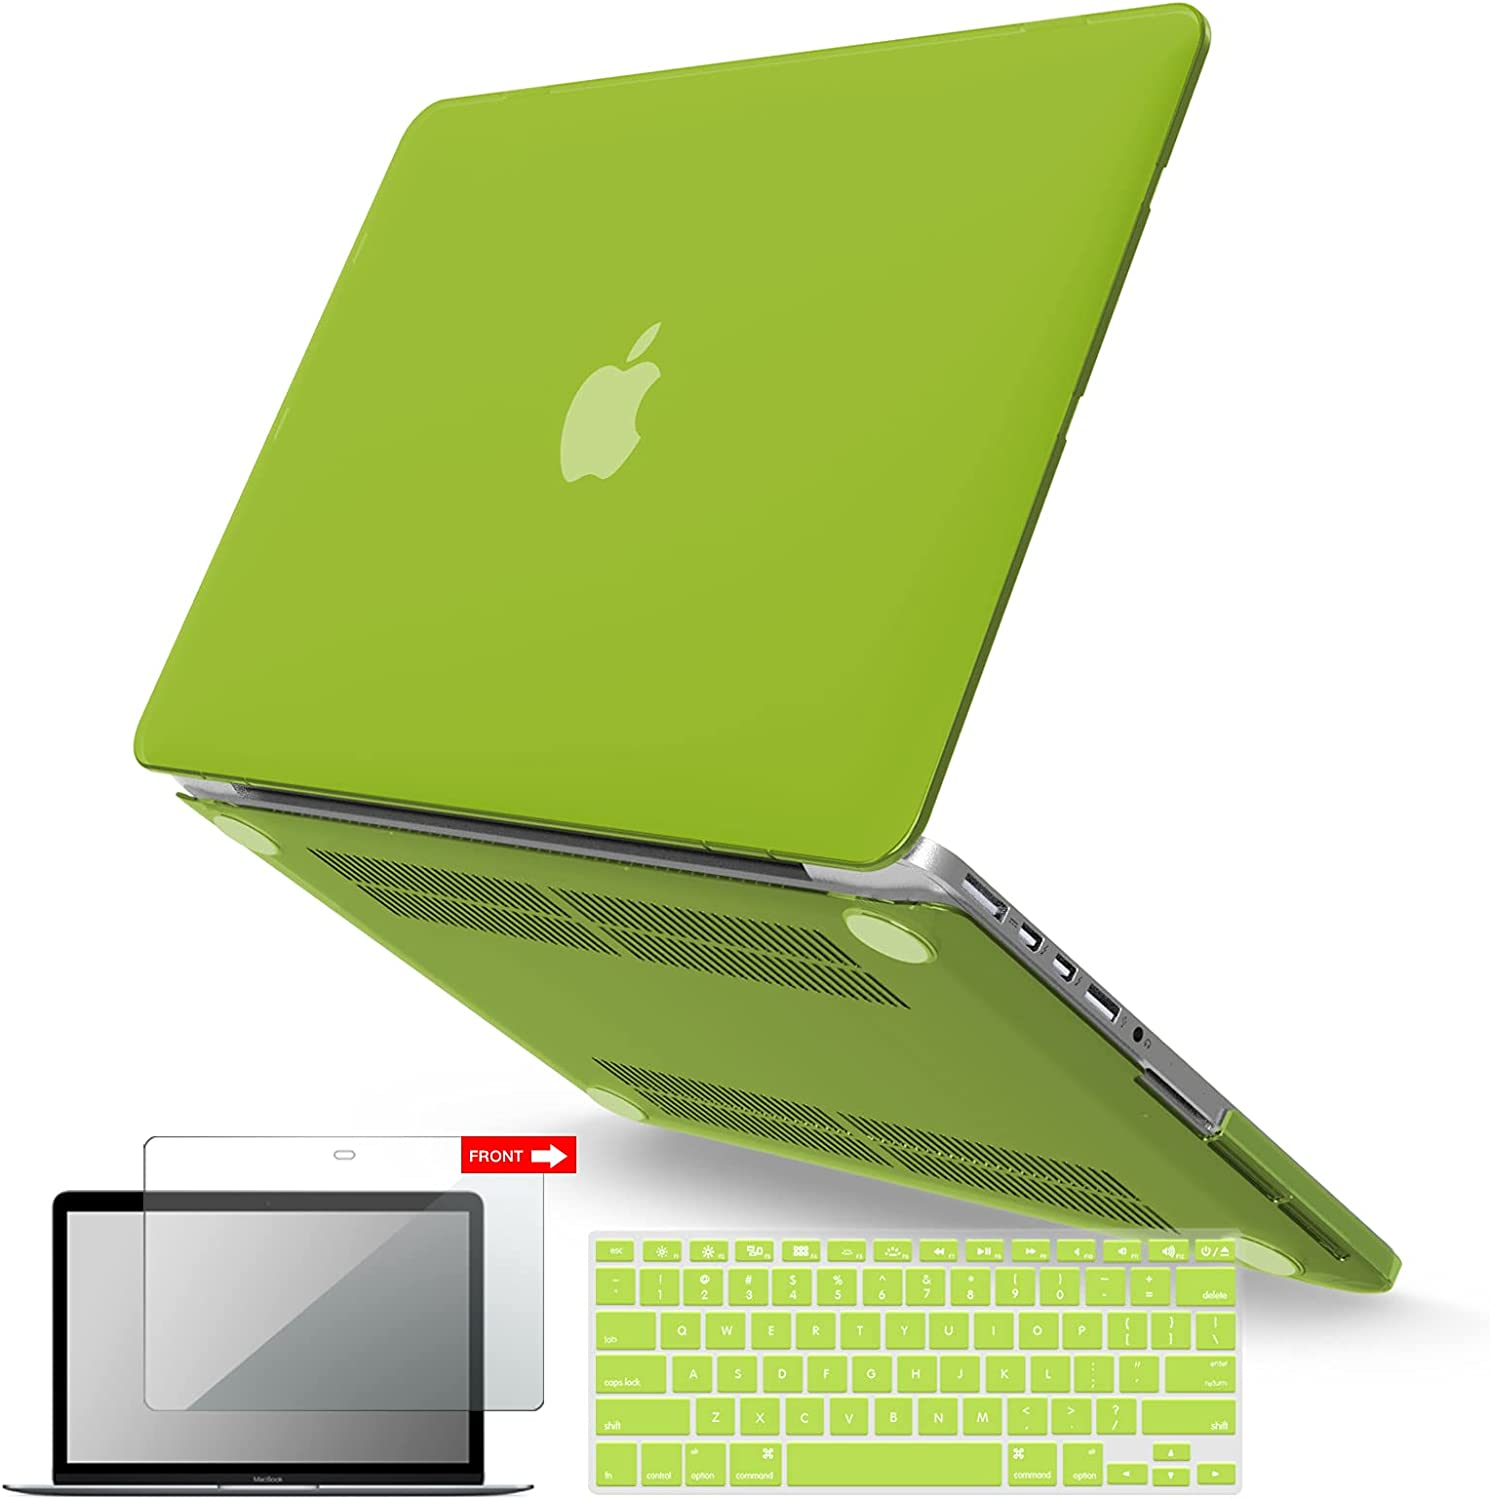 IBENZER MacBook Pro 13 Inch Case 2015 2014 2013 end 2012 A1502 A1425, Hard Shell Case with Keyboard Cover & Screen Protector for Old Version Apple Mac Pro Retina 13, Avocado Green, R13AVGN+2